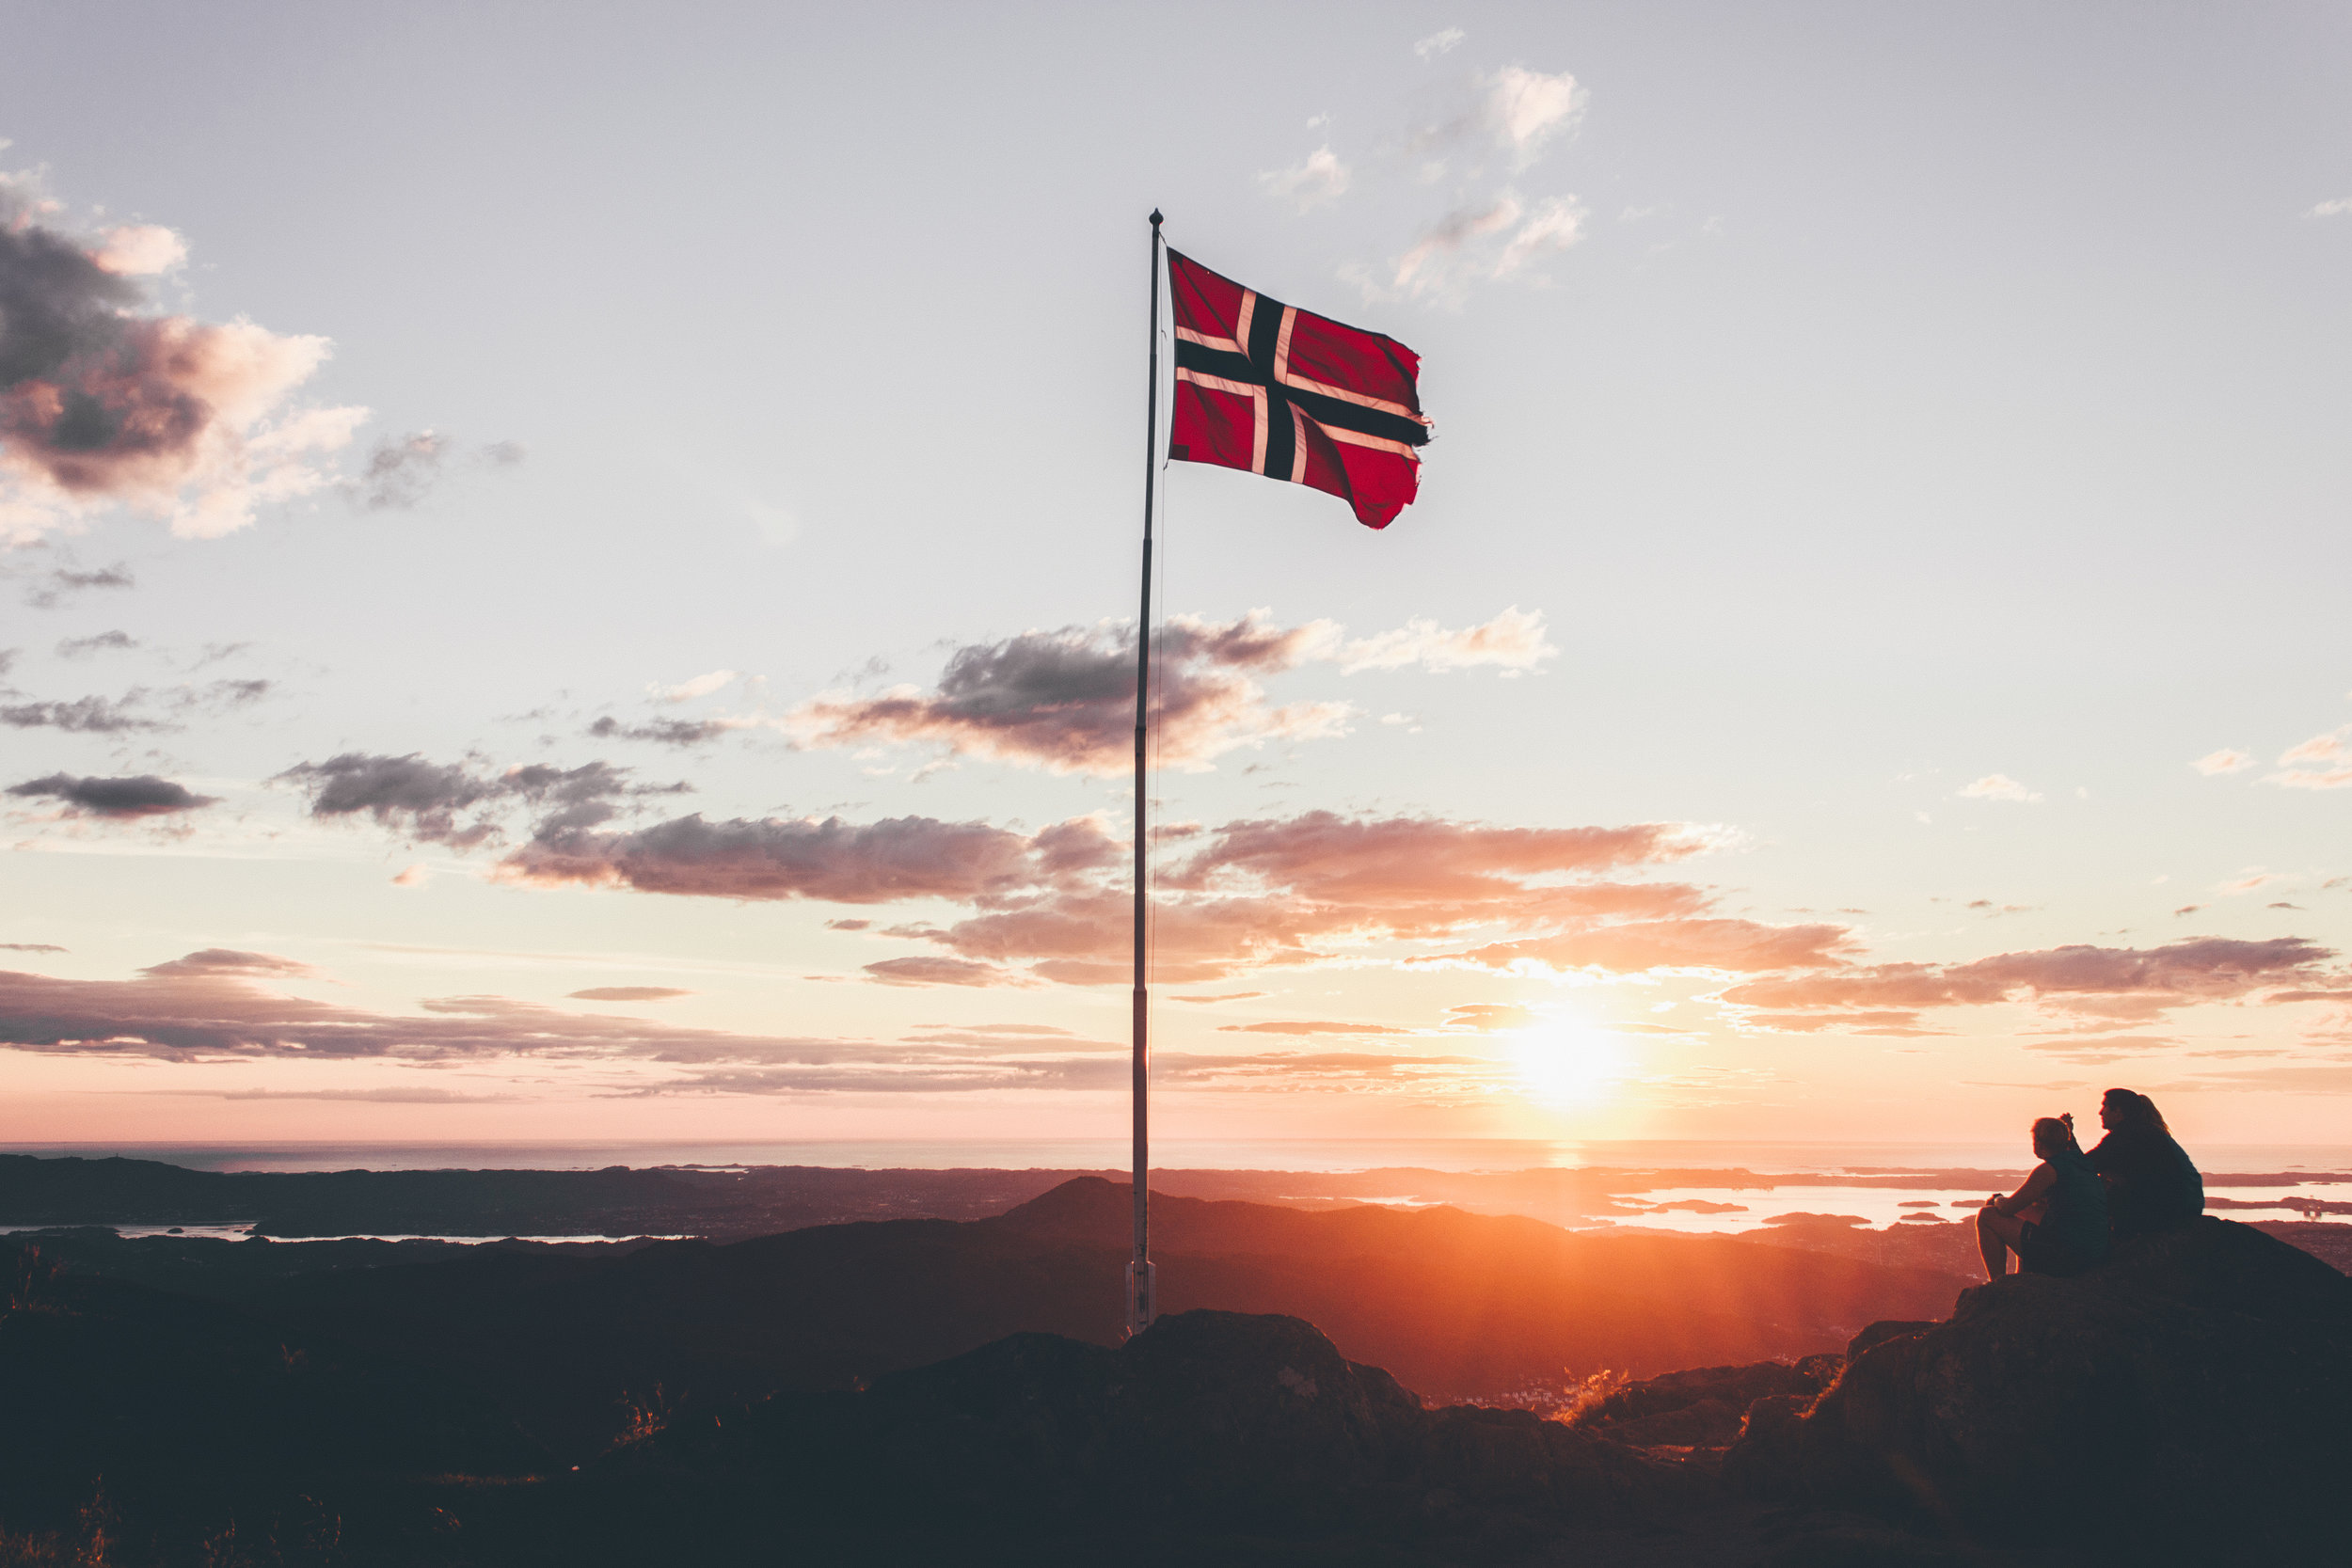 Norway to make all short-haul flights electric by 2040 -